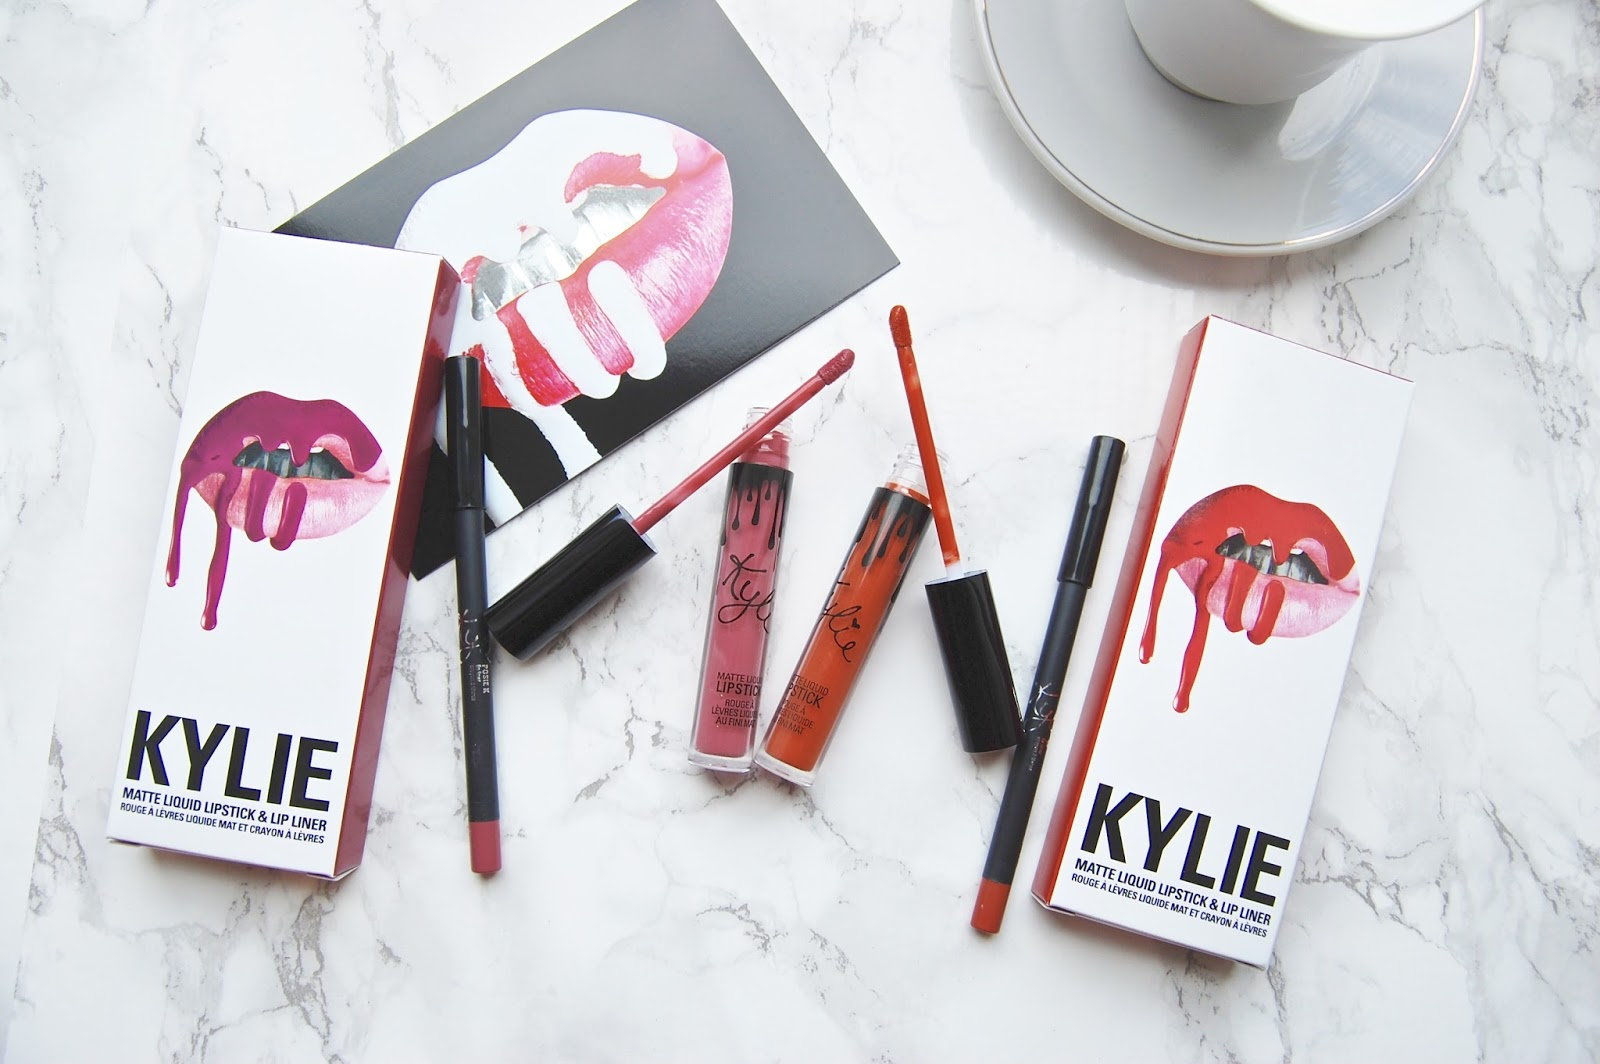 Read  my review of the Kylie Lip Kits in Posie K and 22